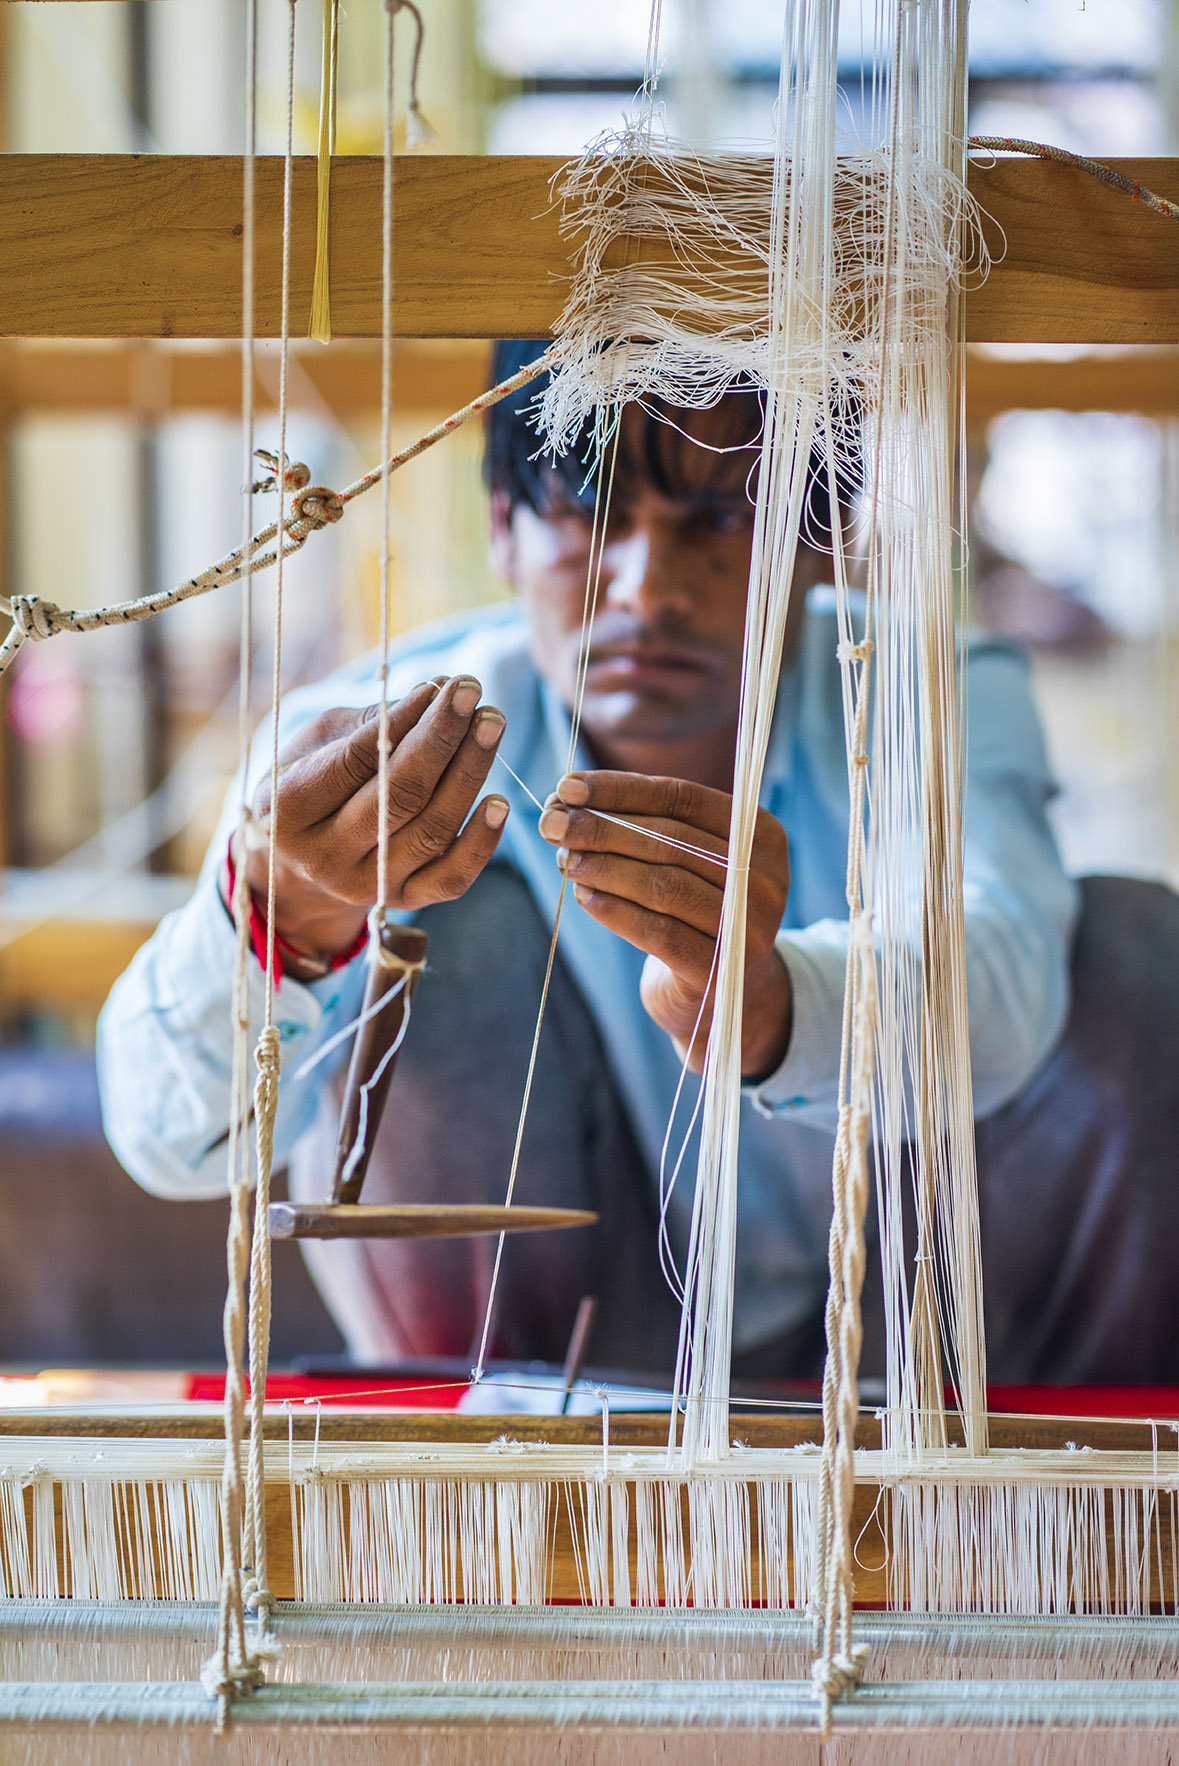 The weaving of Chanderi saris needs a lot of calculations and adjustments